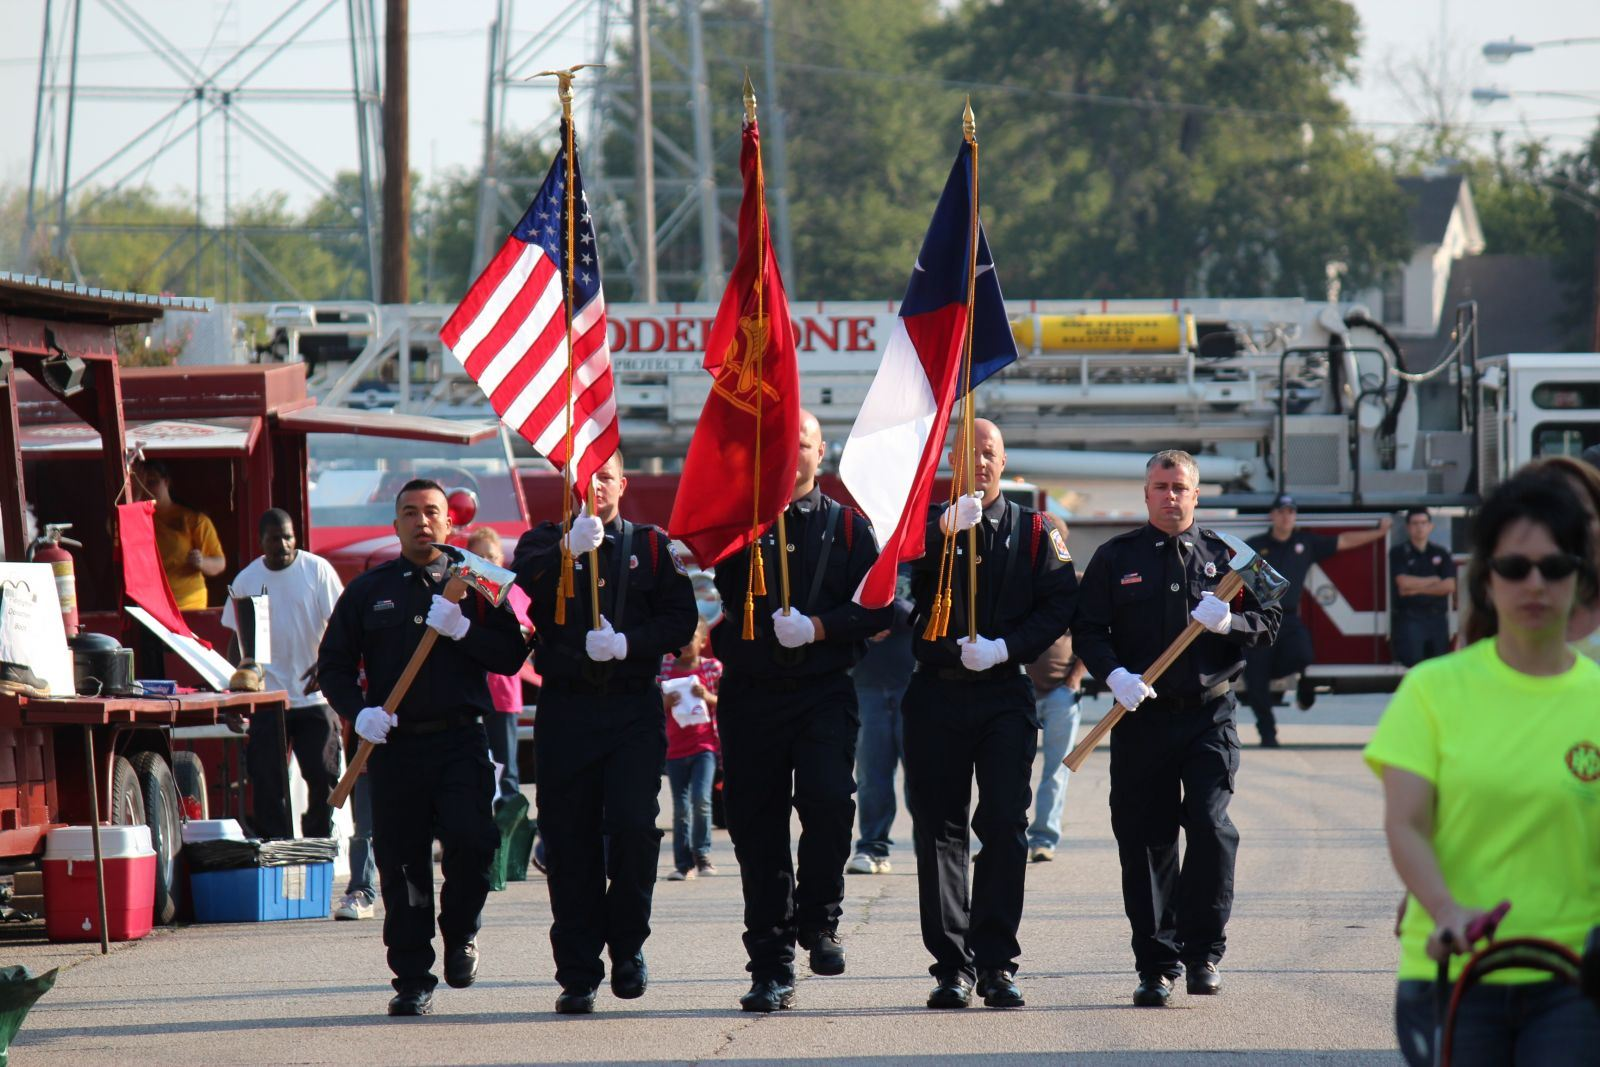 Fire Department Honor Guard Marching